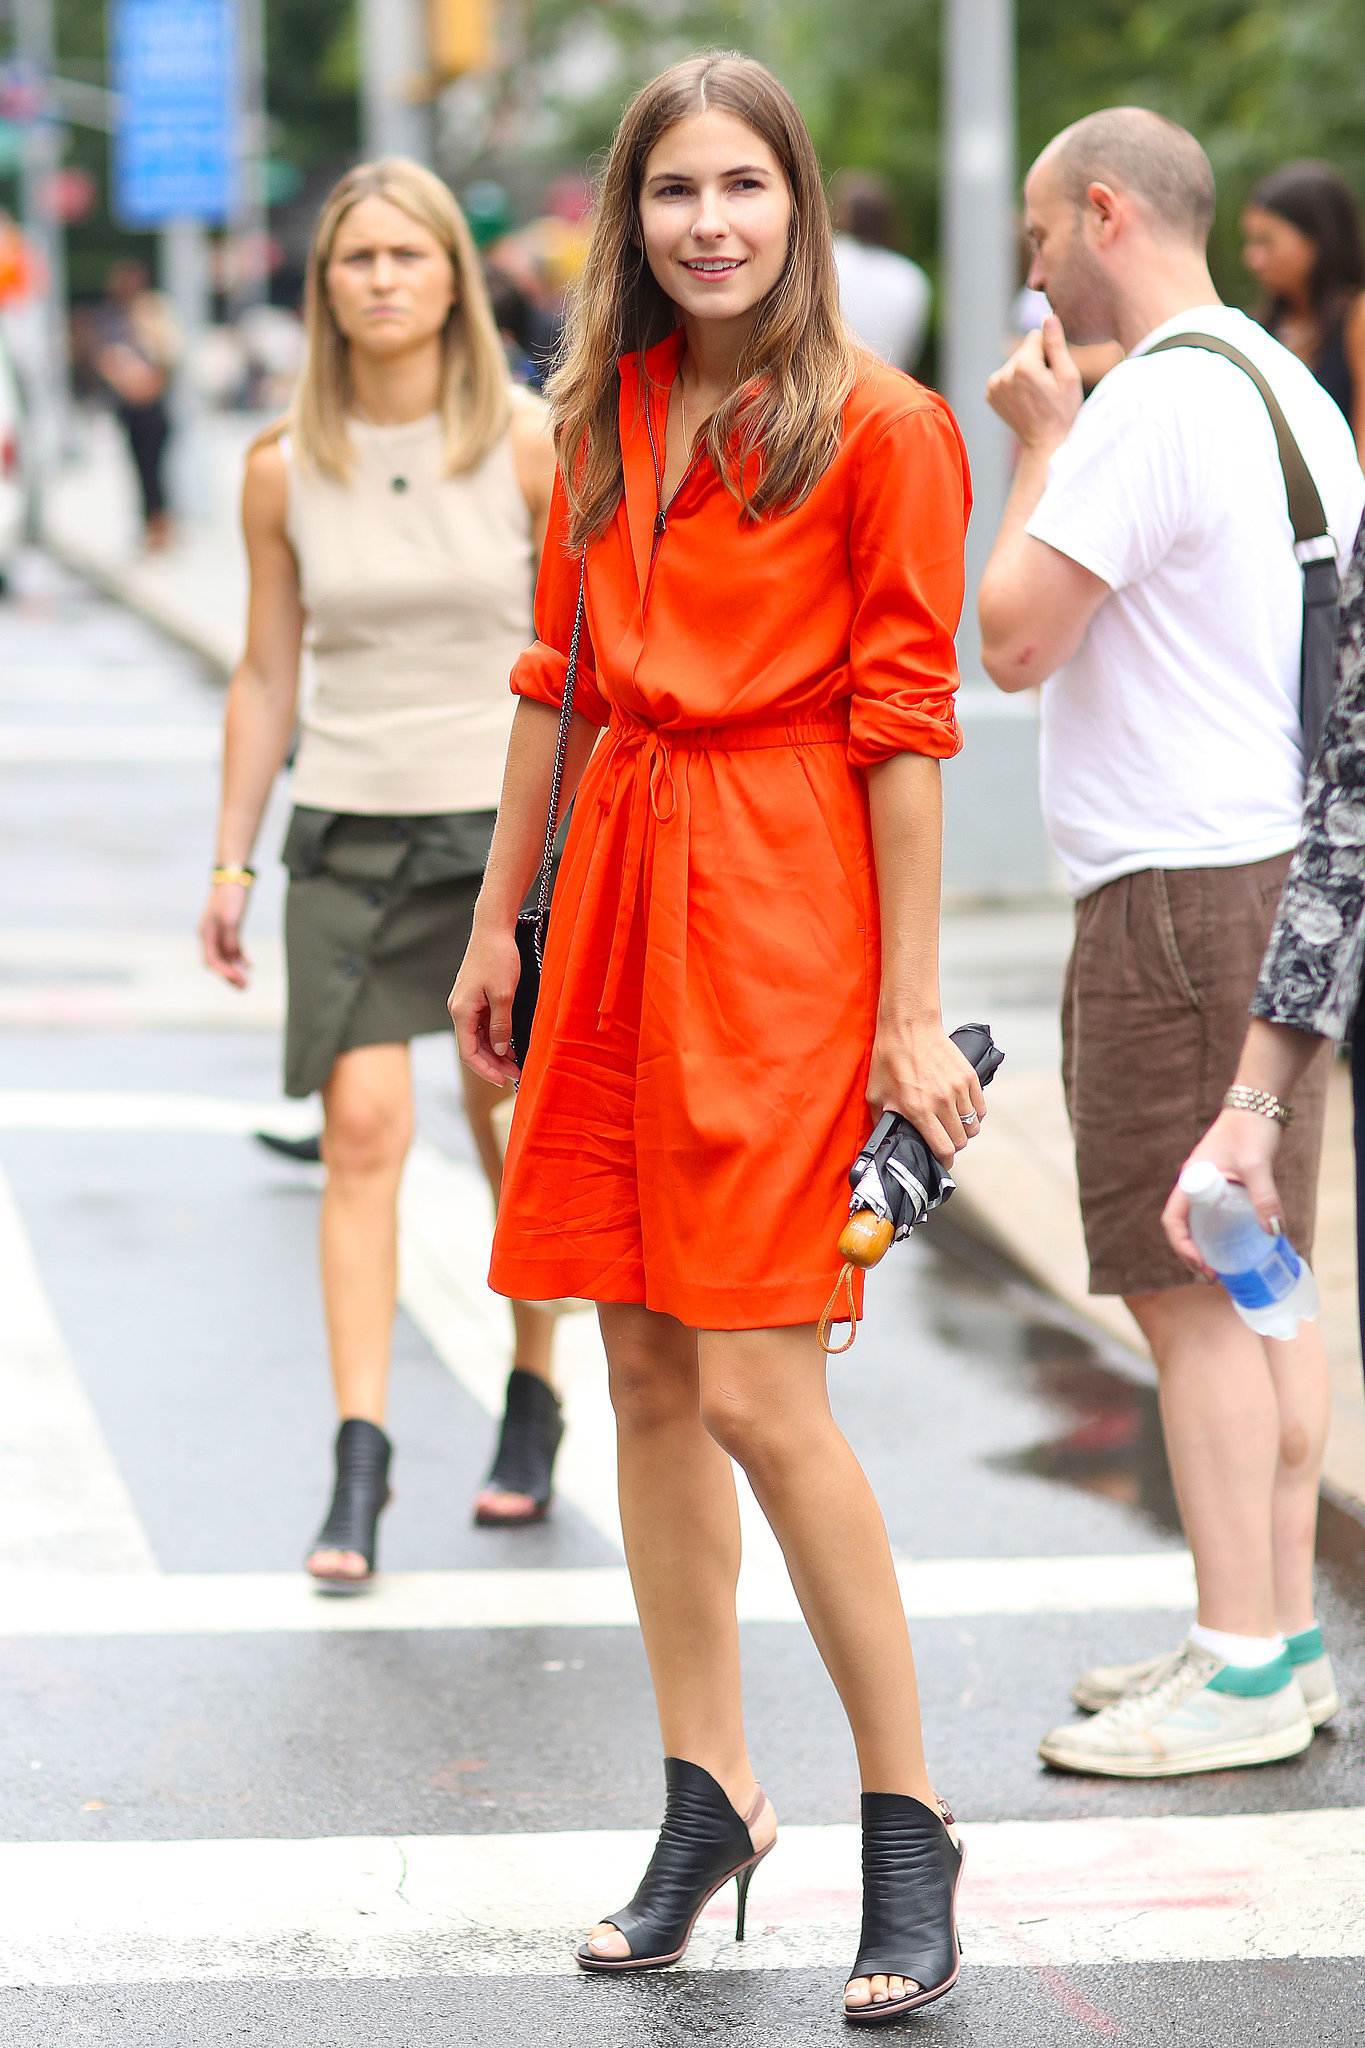 This is all we want to wear to work this Summer — a breezy, bold-hued dress and a great pair of heels go from the office to happy hour in a flash.